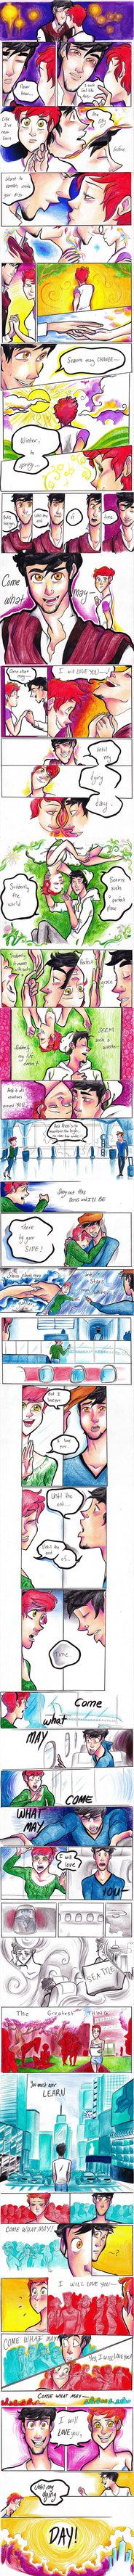 This musical comic: Come What May by pocket-picasso on deviantART.